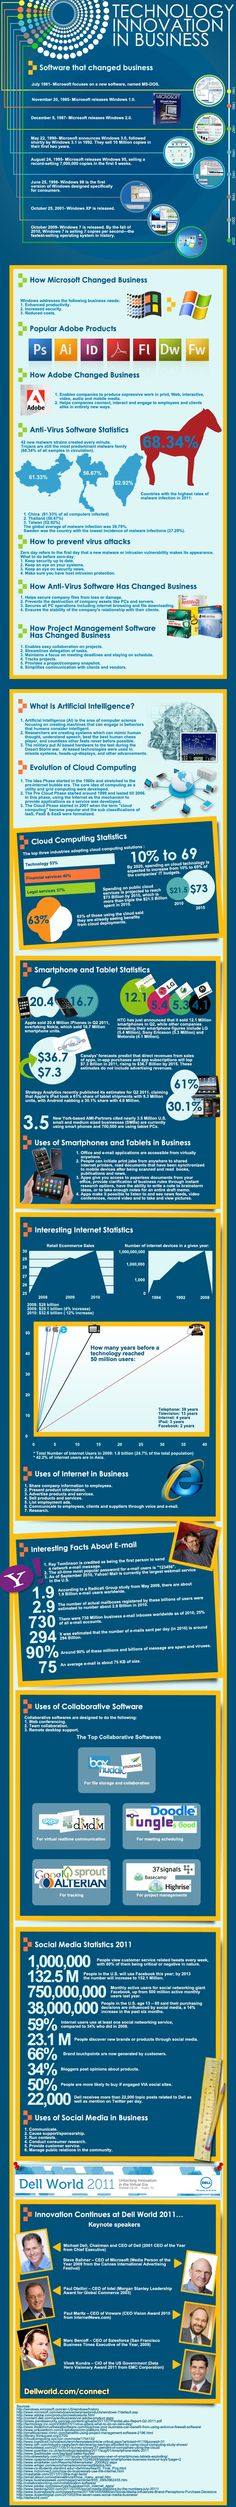 Technology Innovation In Business [INFOGRAPHIC] #business #technology #SEO